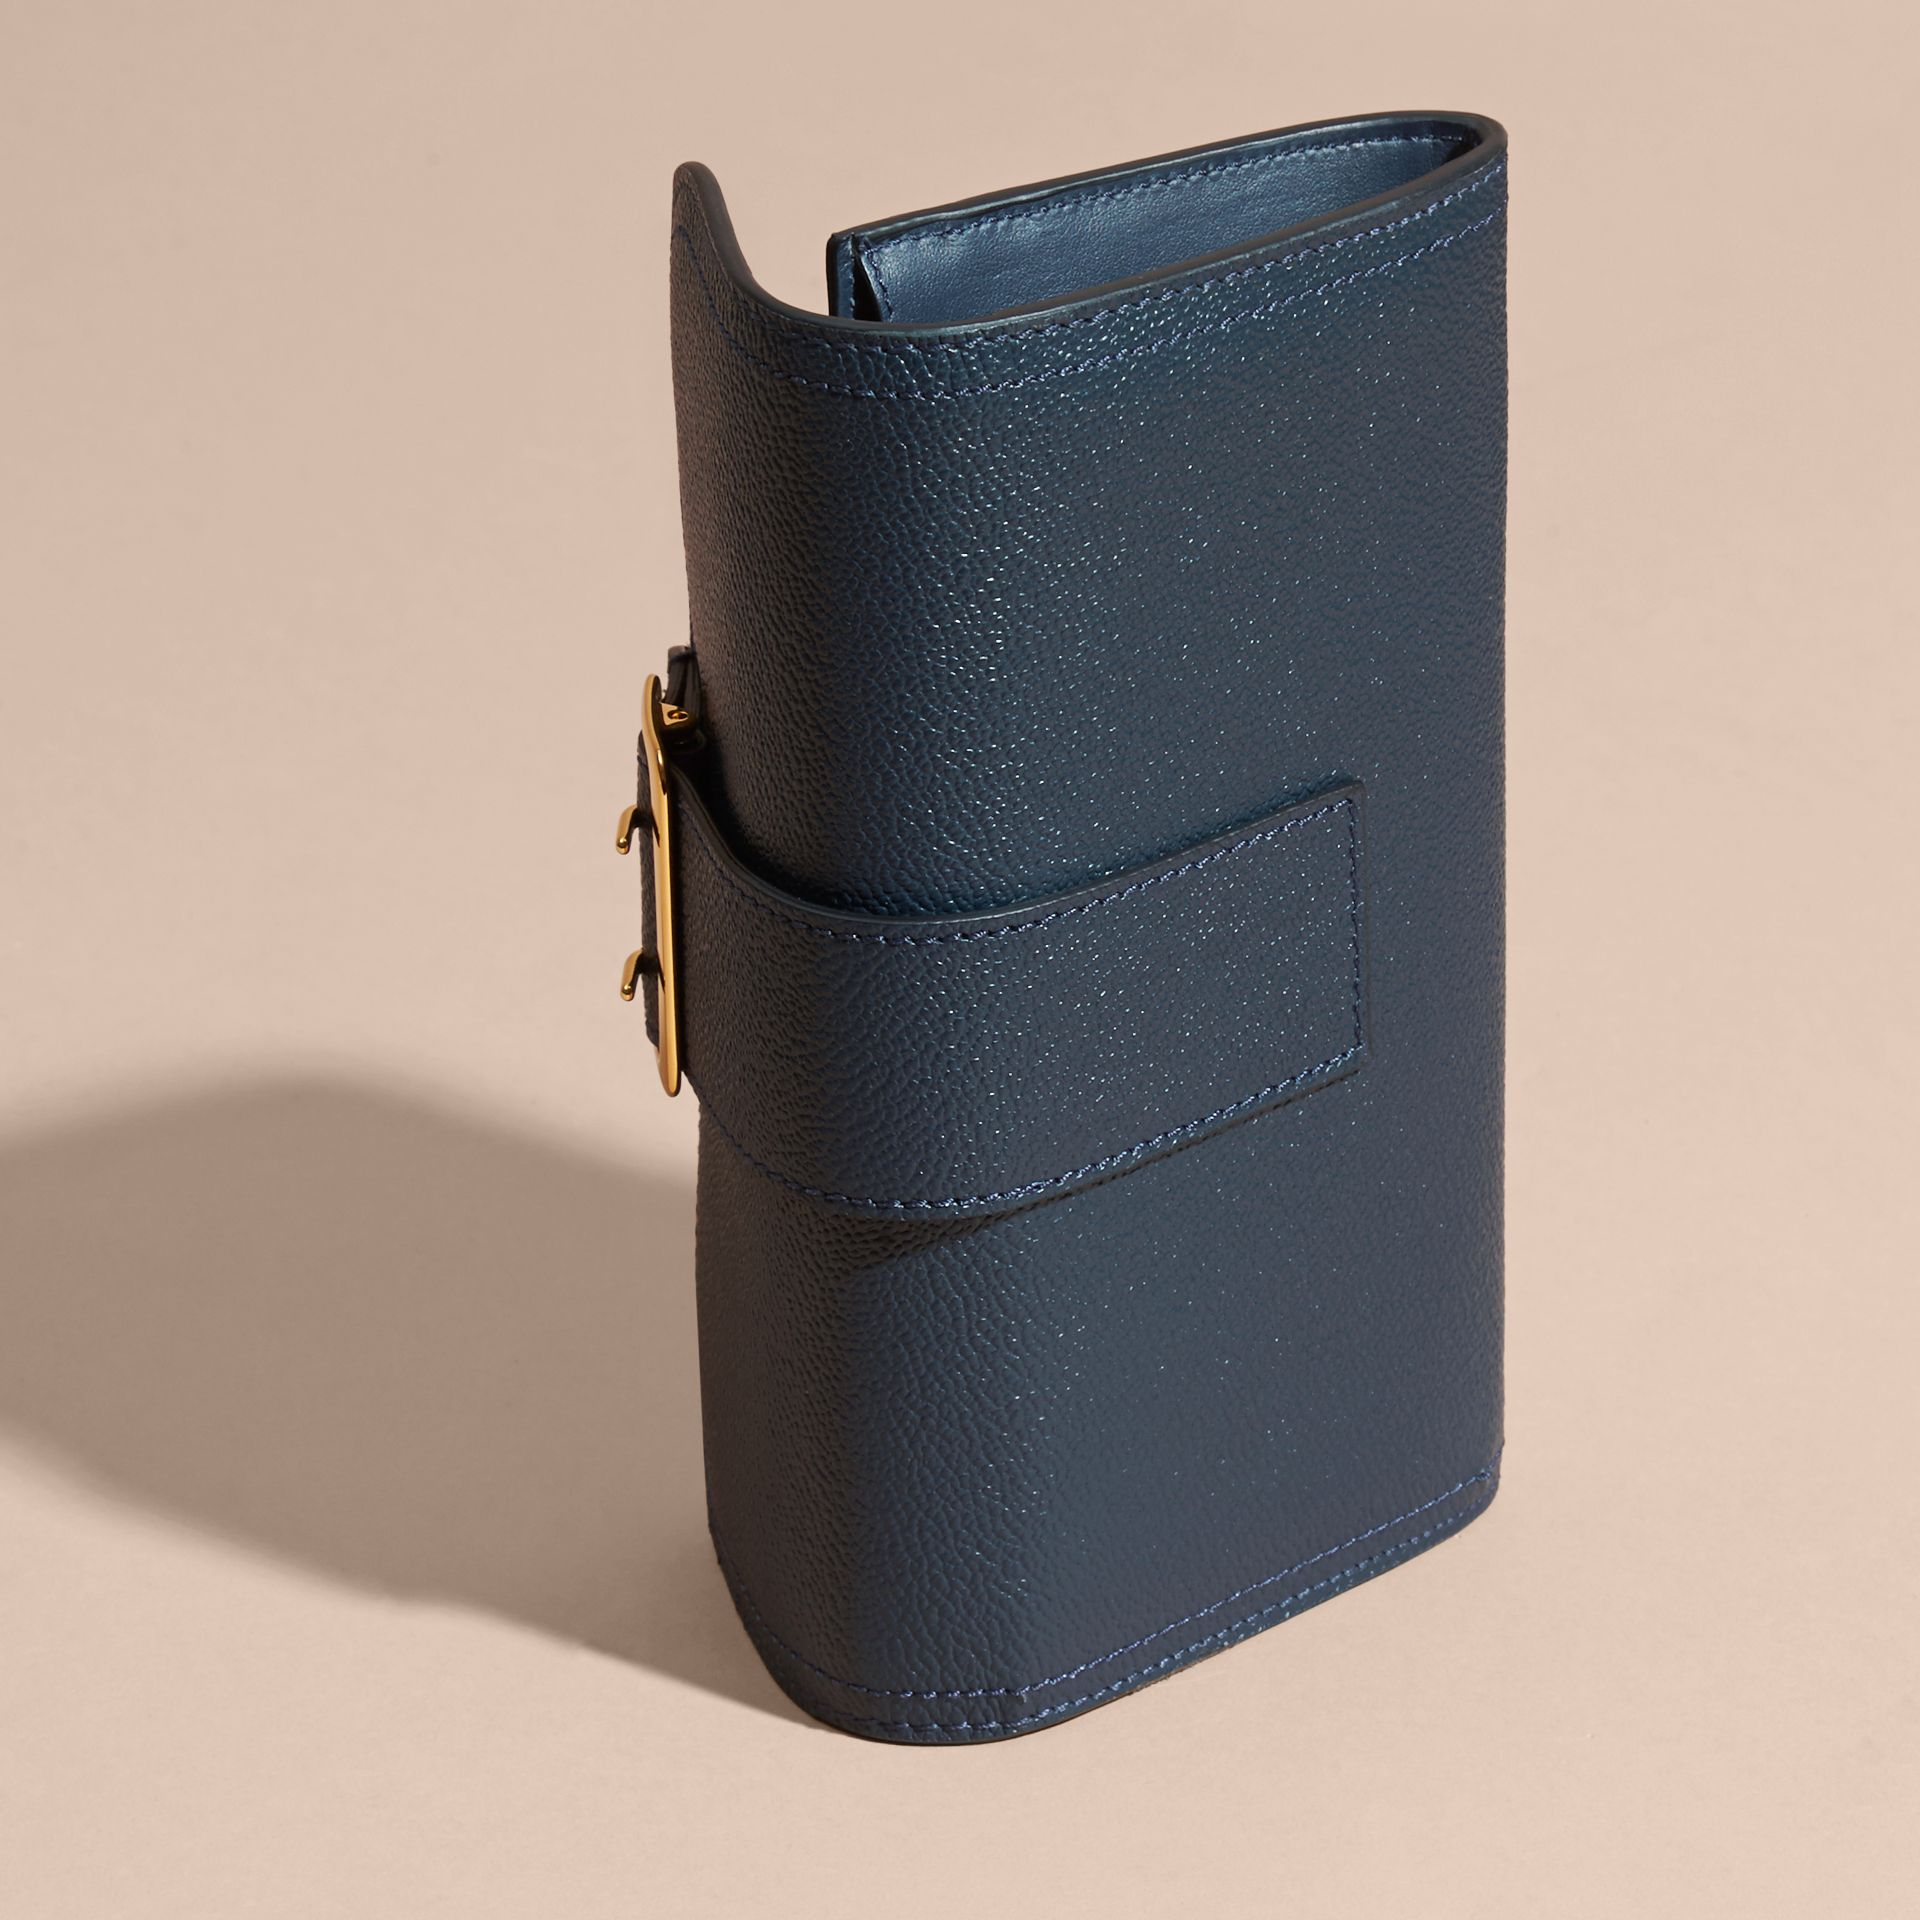 Textured Leather Continental Wallet in Blue Carbon - Women | Burberry Singapore - gallery image 3